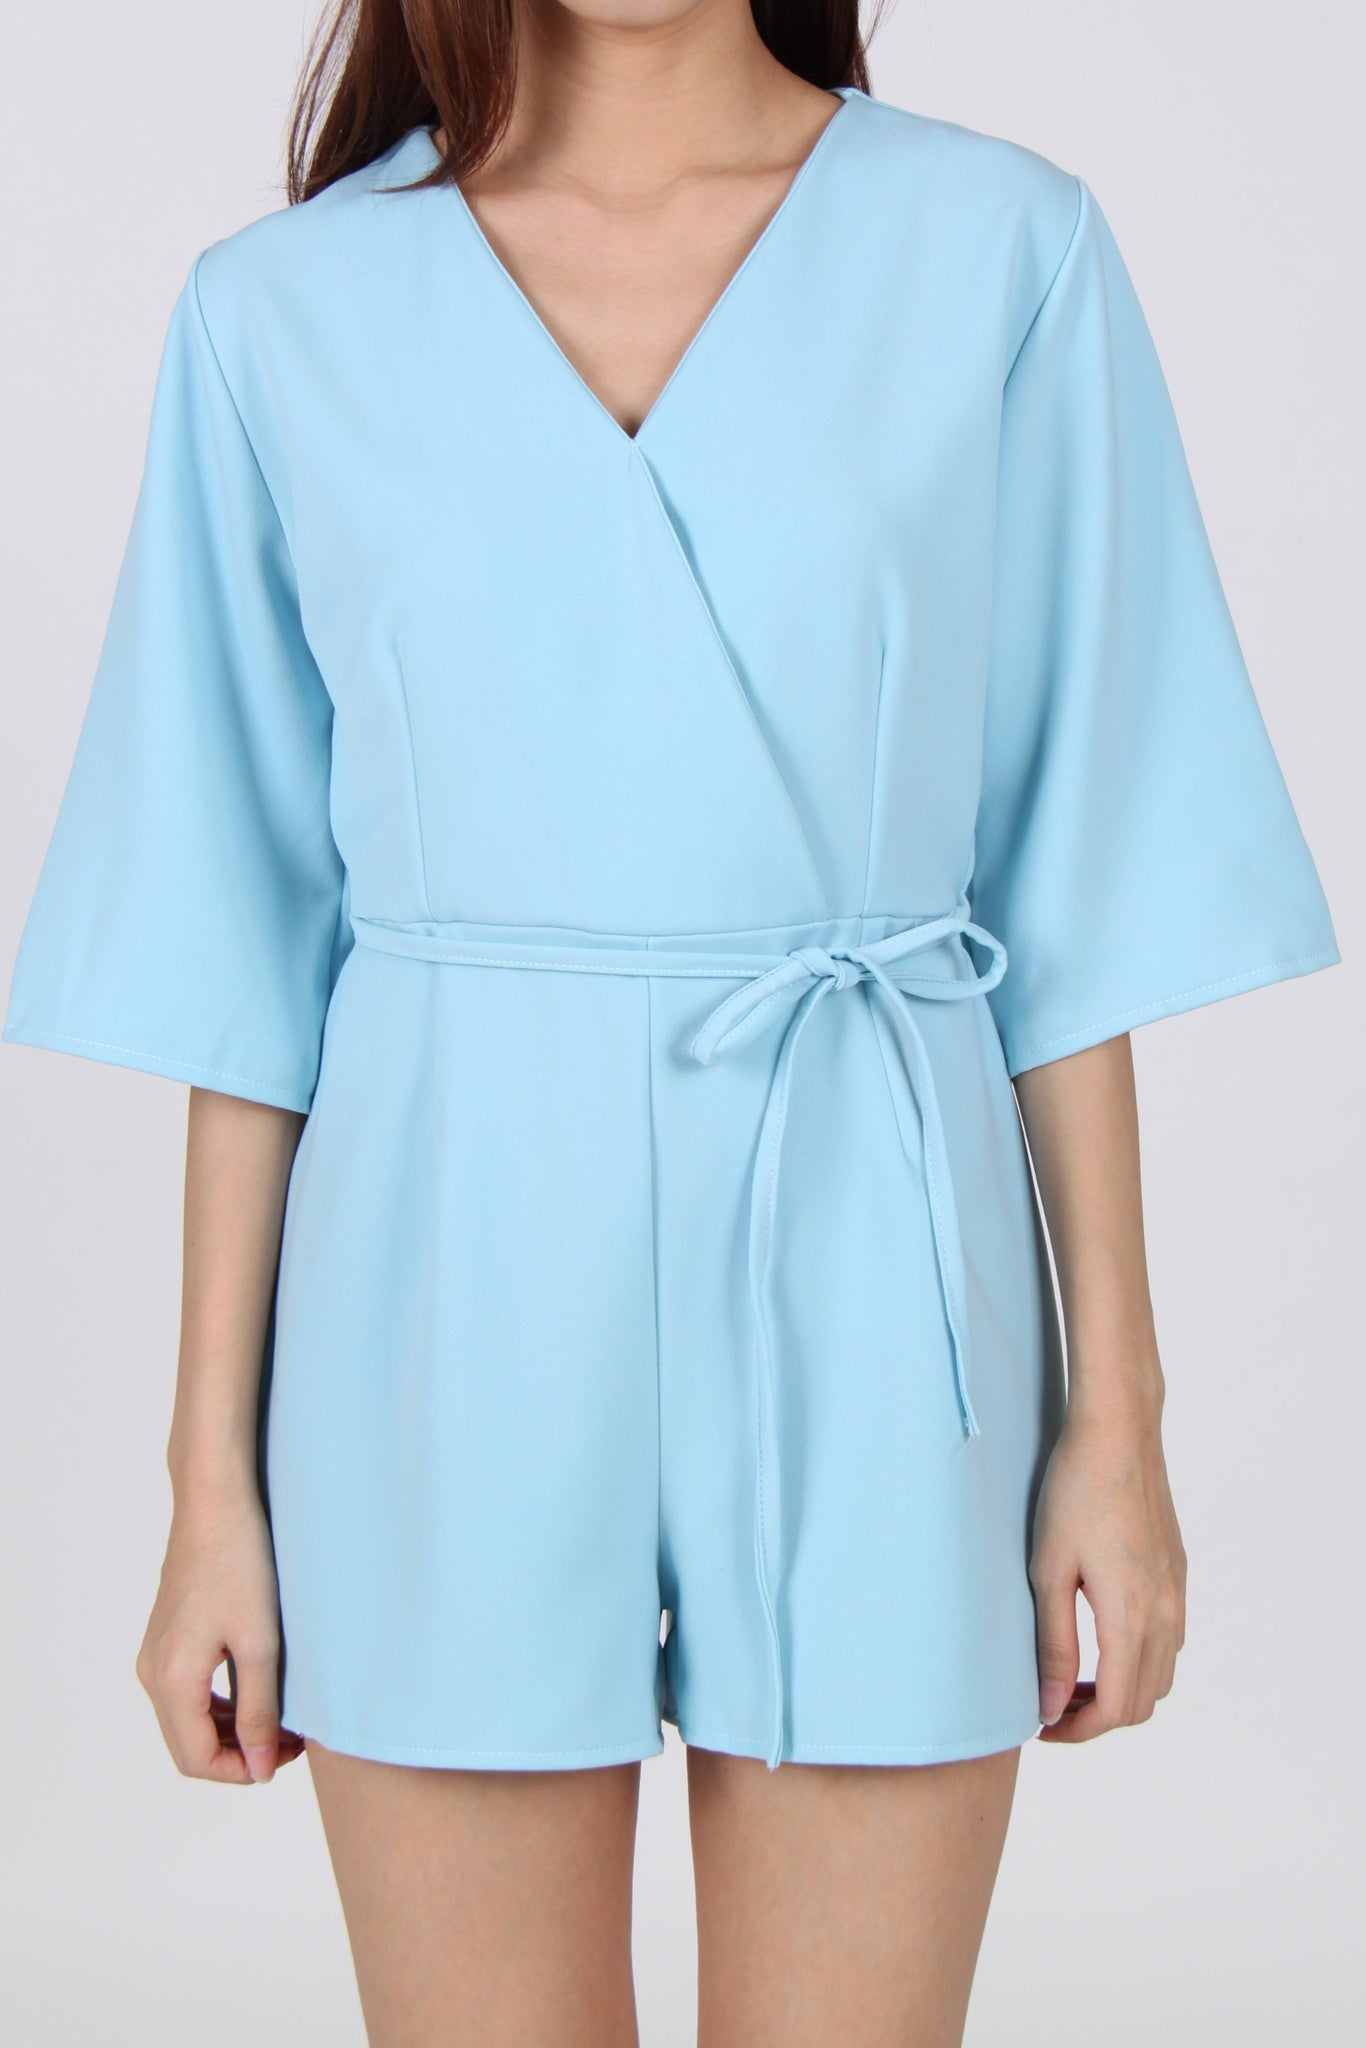 Wrap Quarter Sleeve Romper in Light Blue